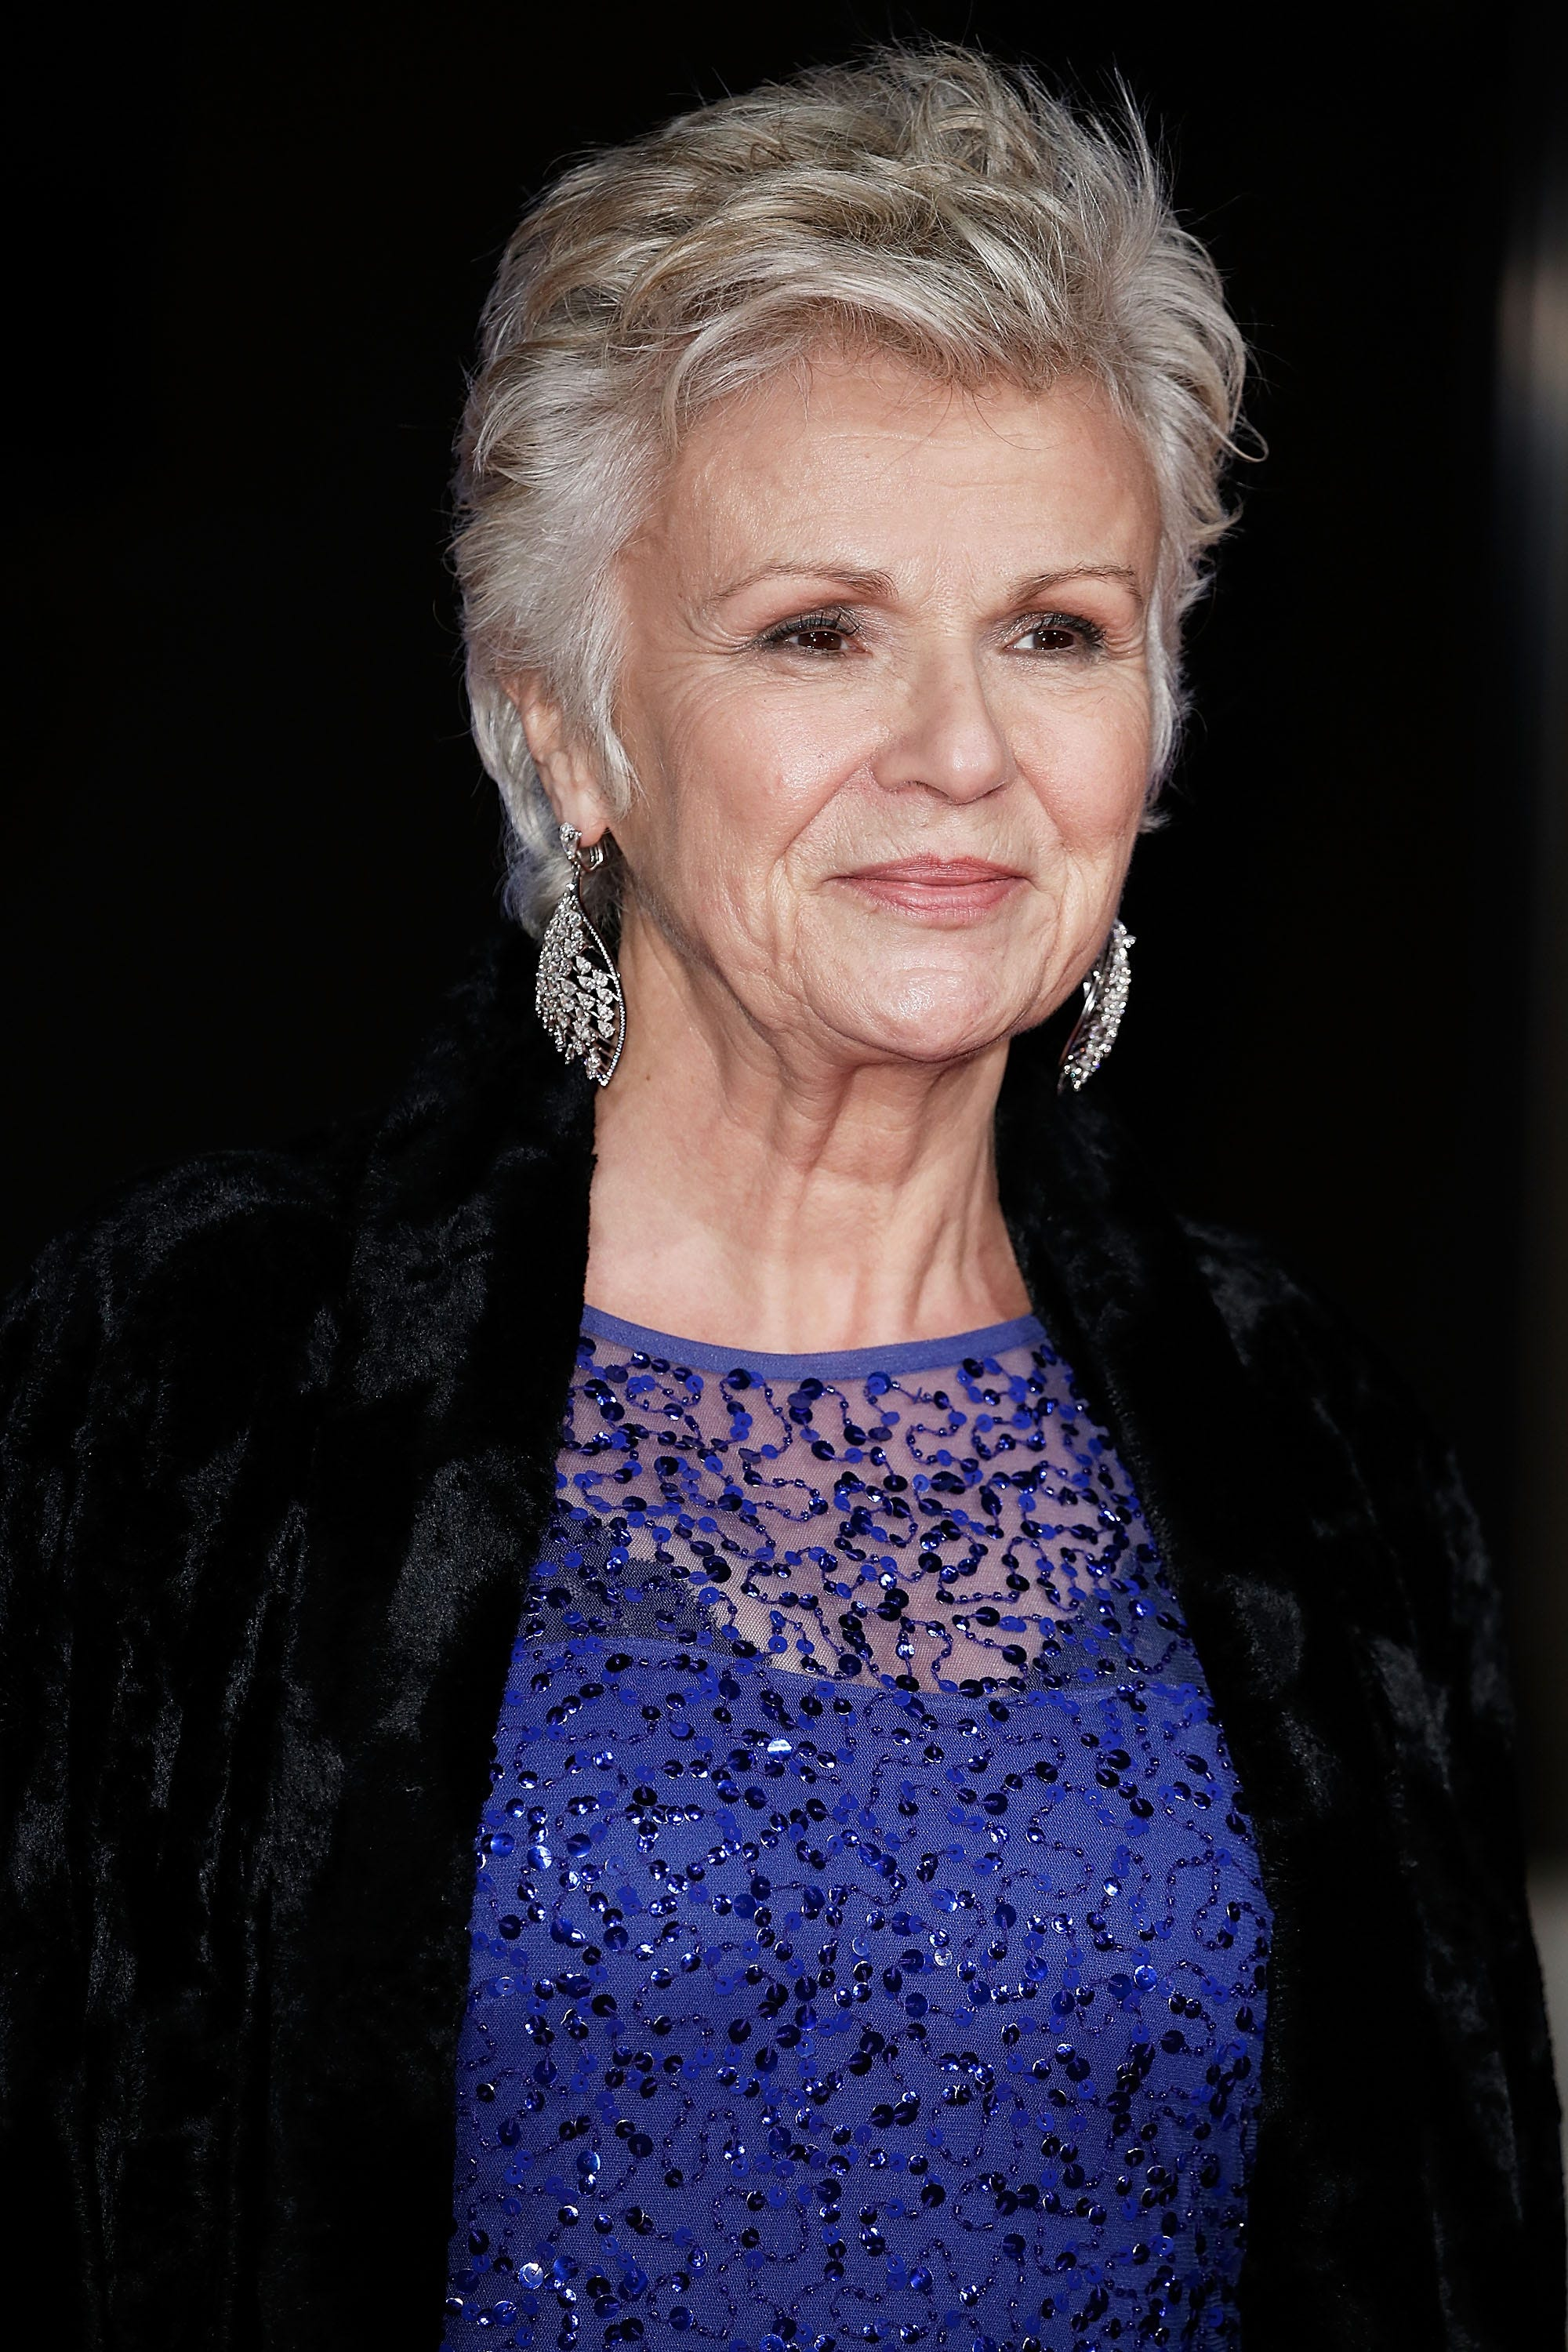 Mamma Mia,   Harry Potter  actress Julie Walters reveals battle with stage 3 bowel cancer